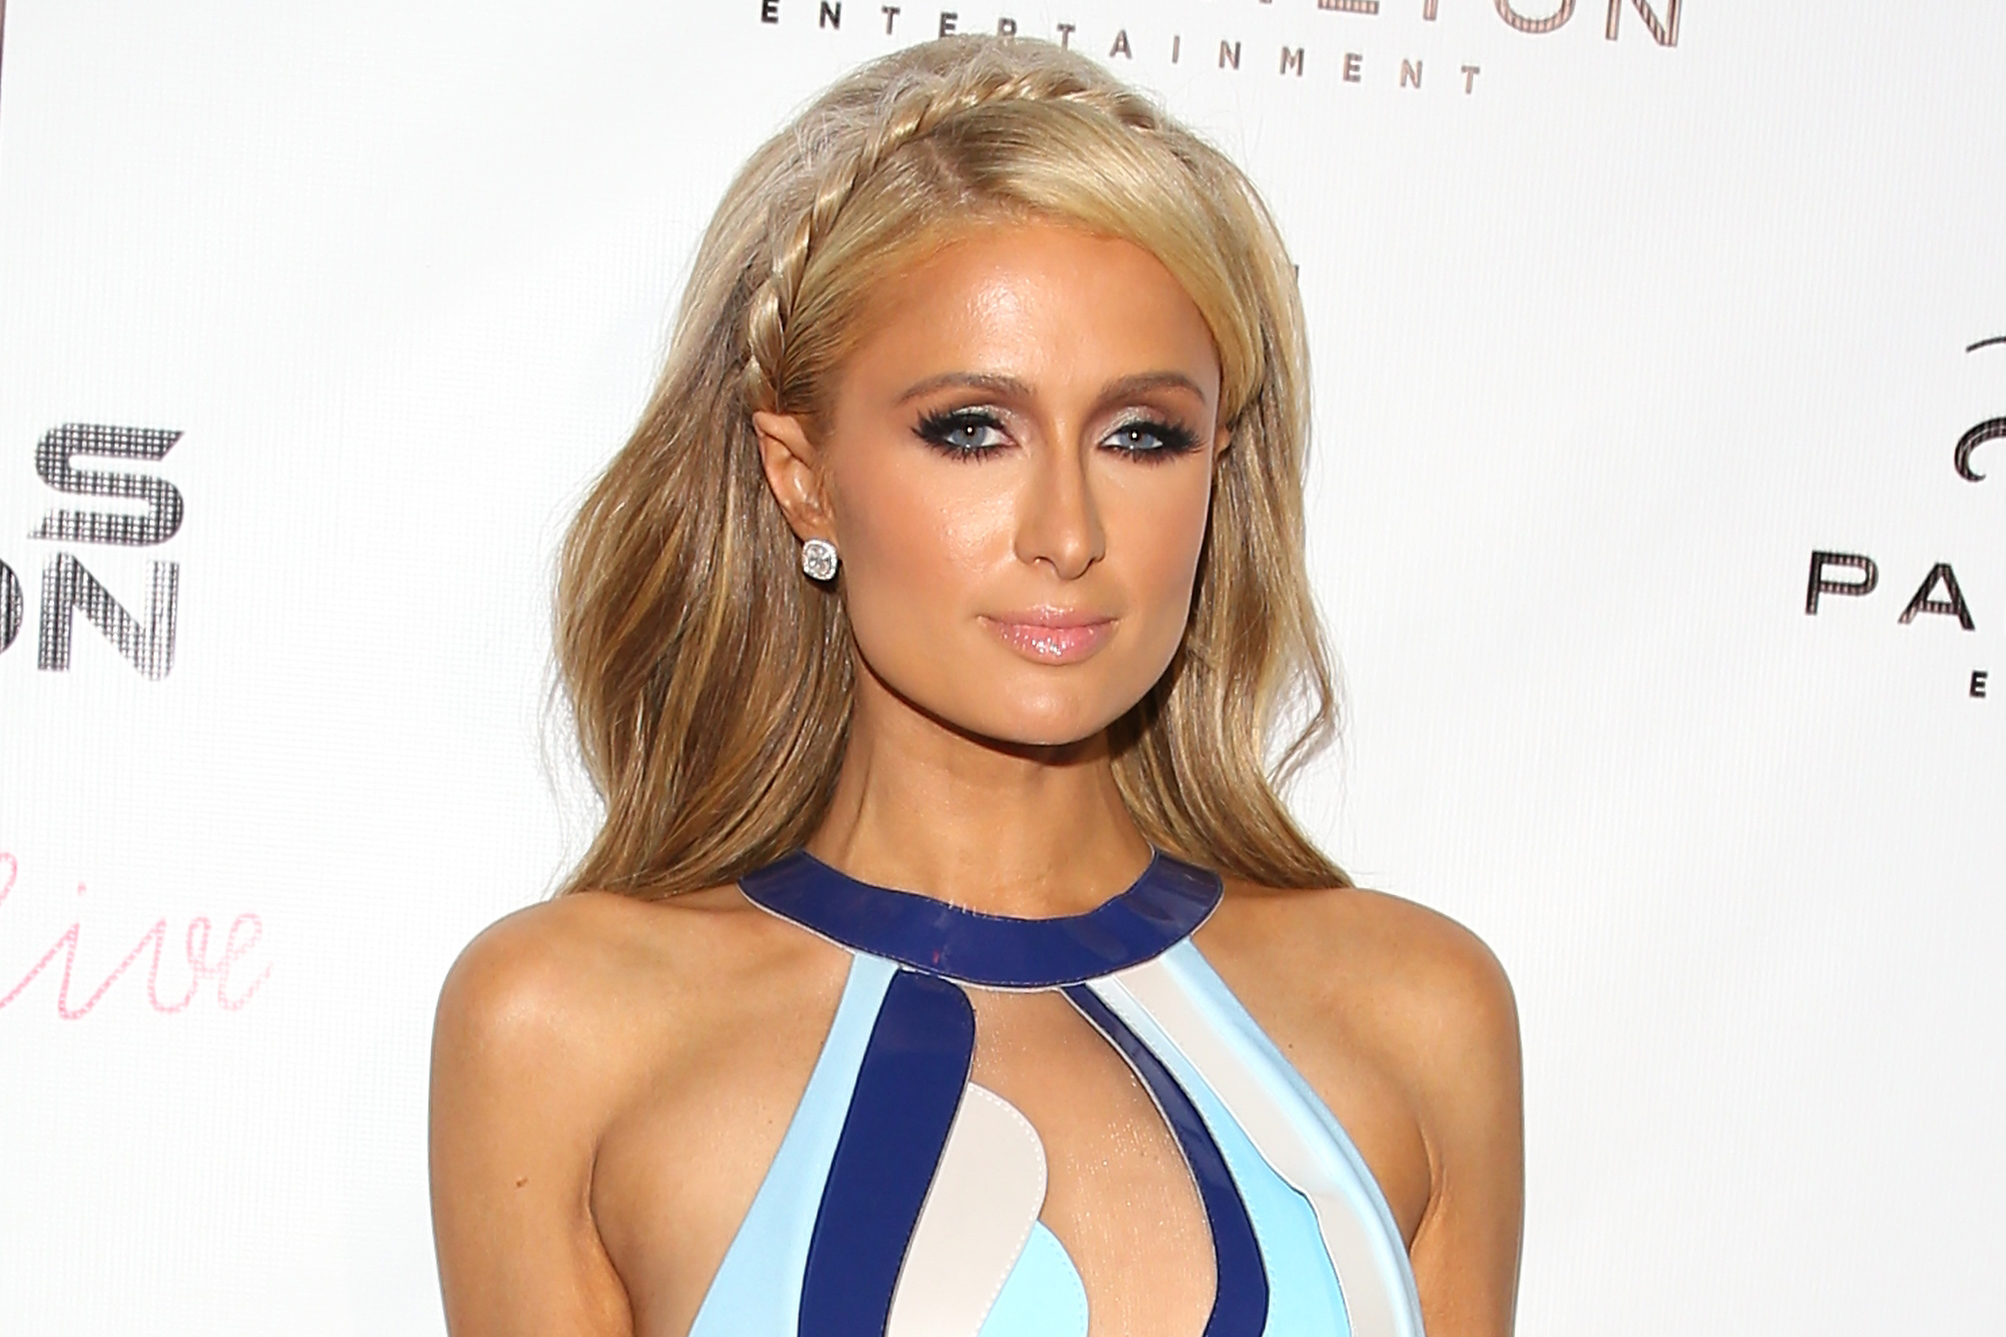 """WEST HOLLYWOOD, CA - JULY 10: Paris Hilton attends her new single """"Come Alive"""" release party held at 1Oak L.A on July 10, 2014 in West Hollywood, California. (Photo by JB Lacroix/WireImage)"""